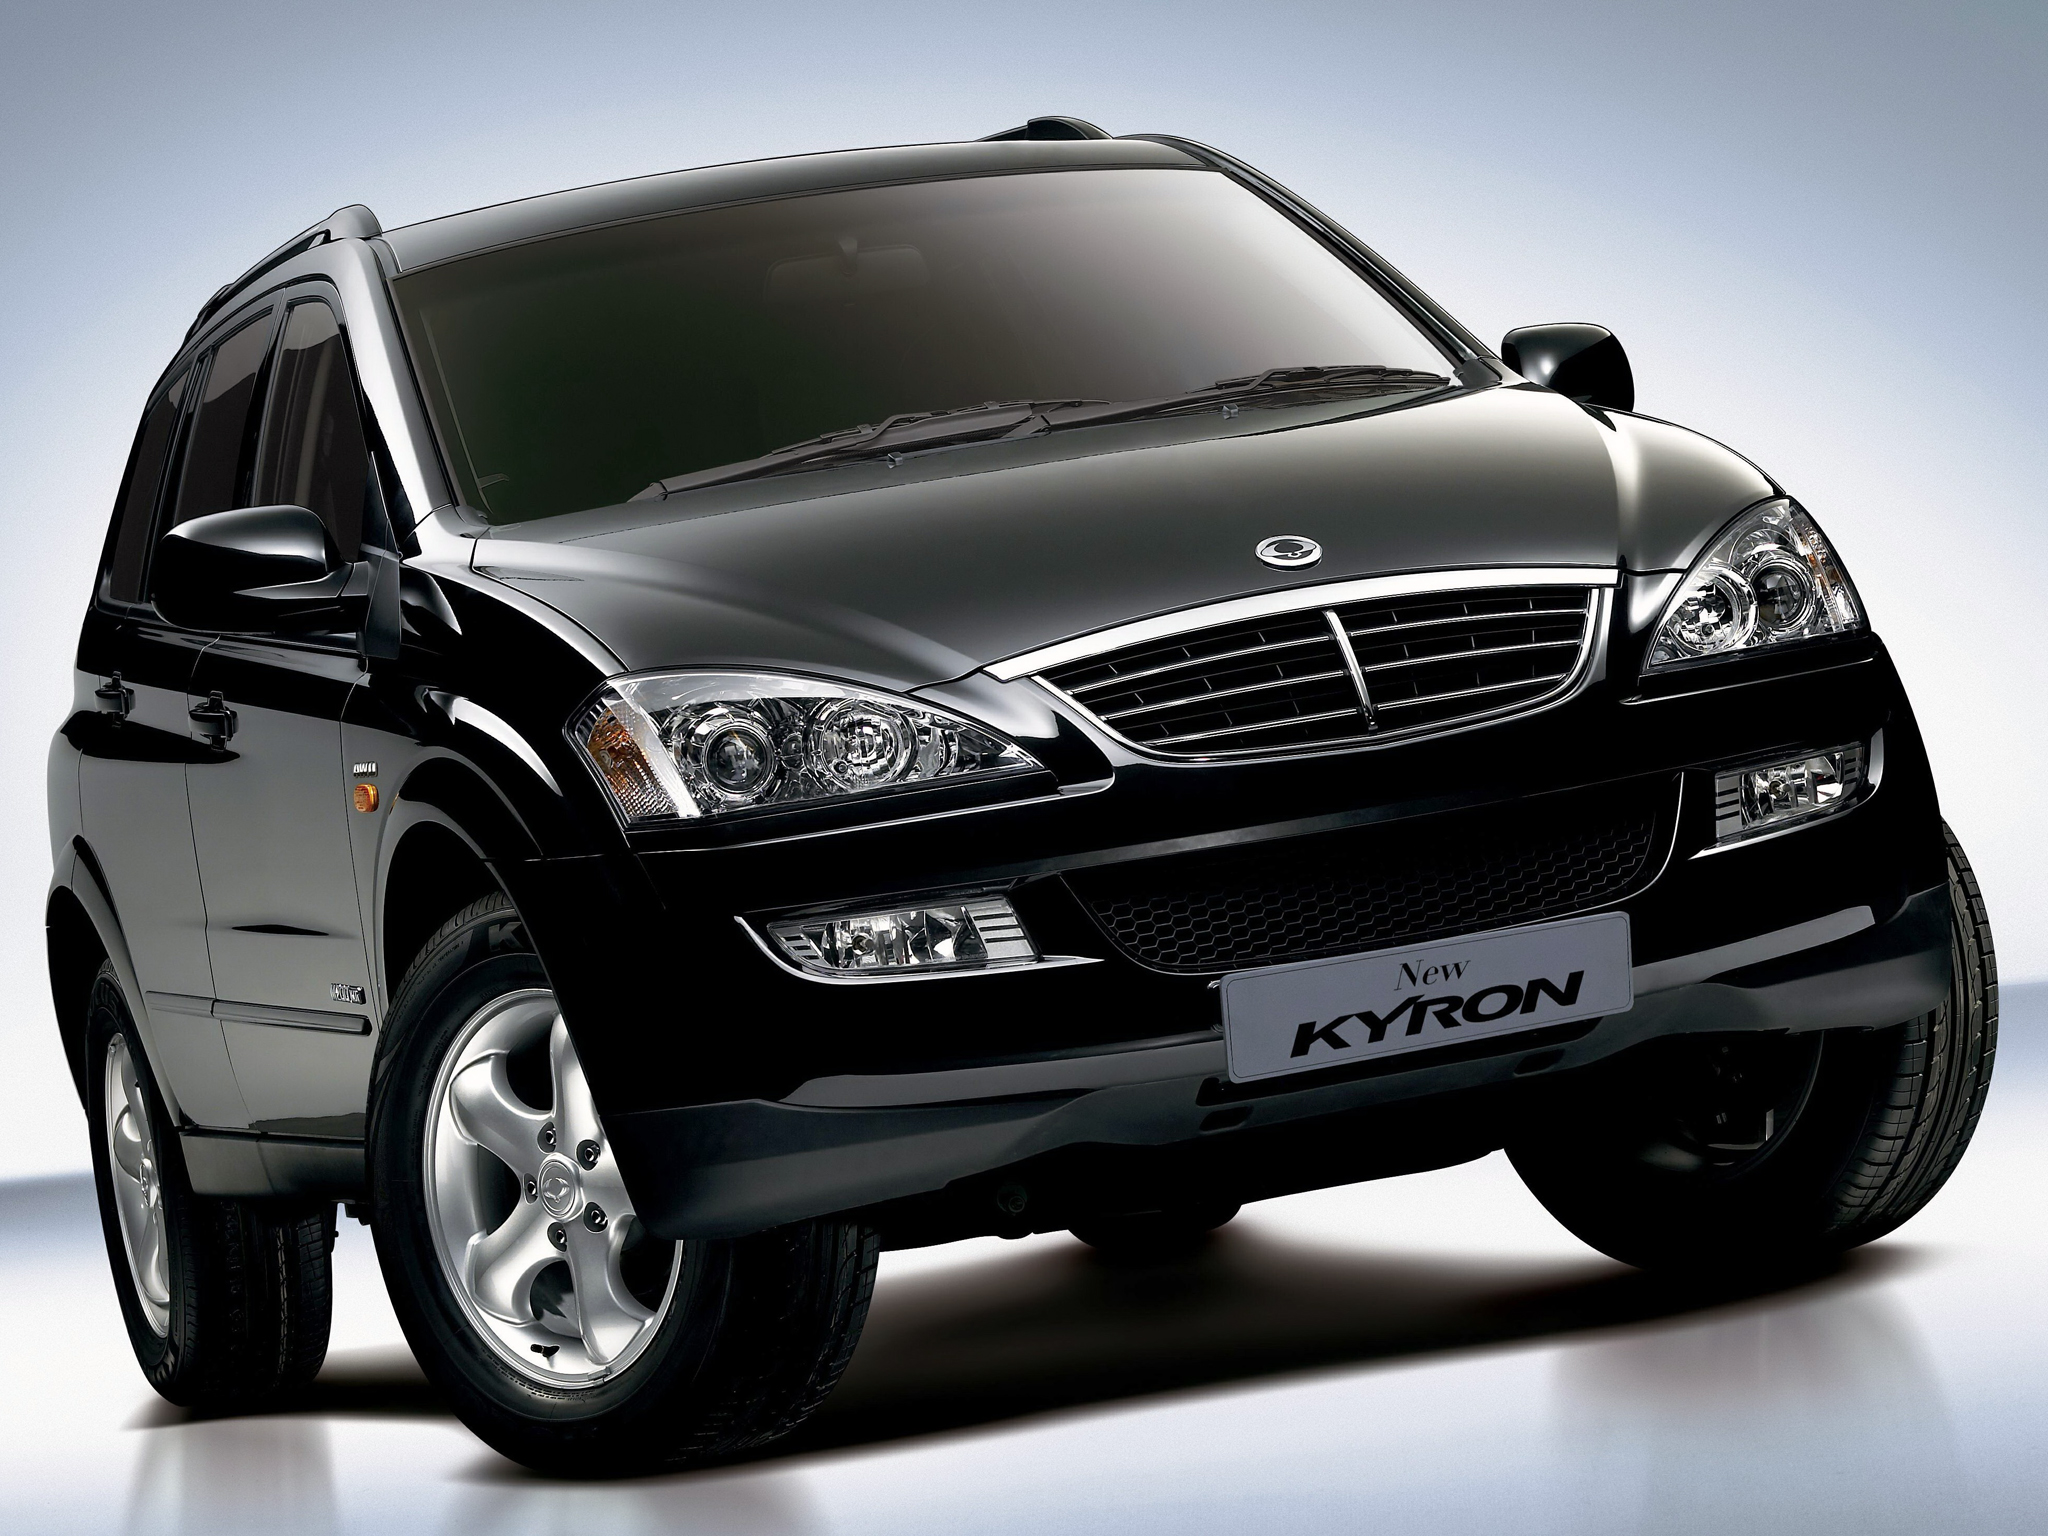 ssangyong kyron 2005 pictures #2